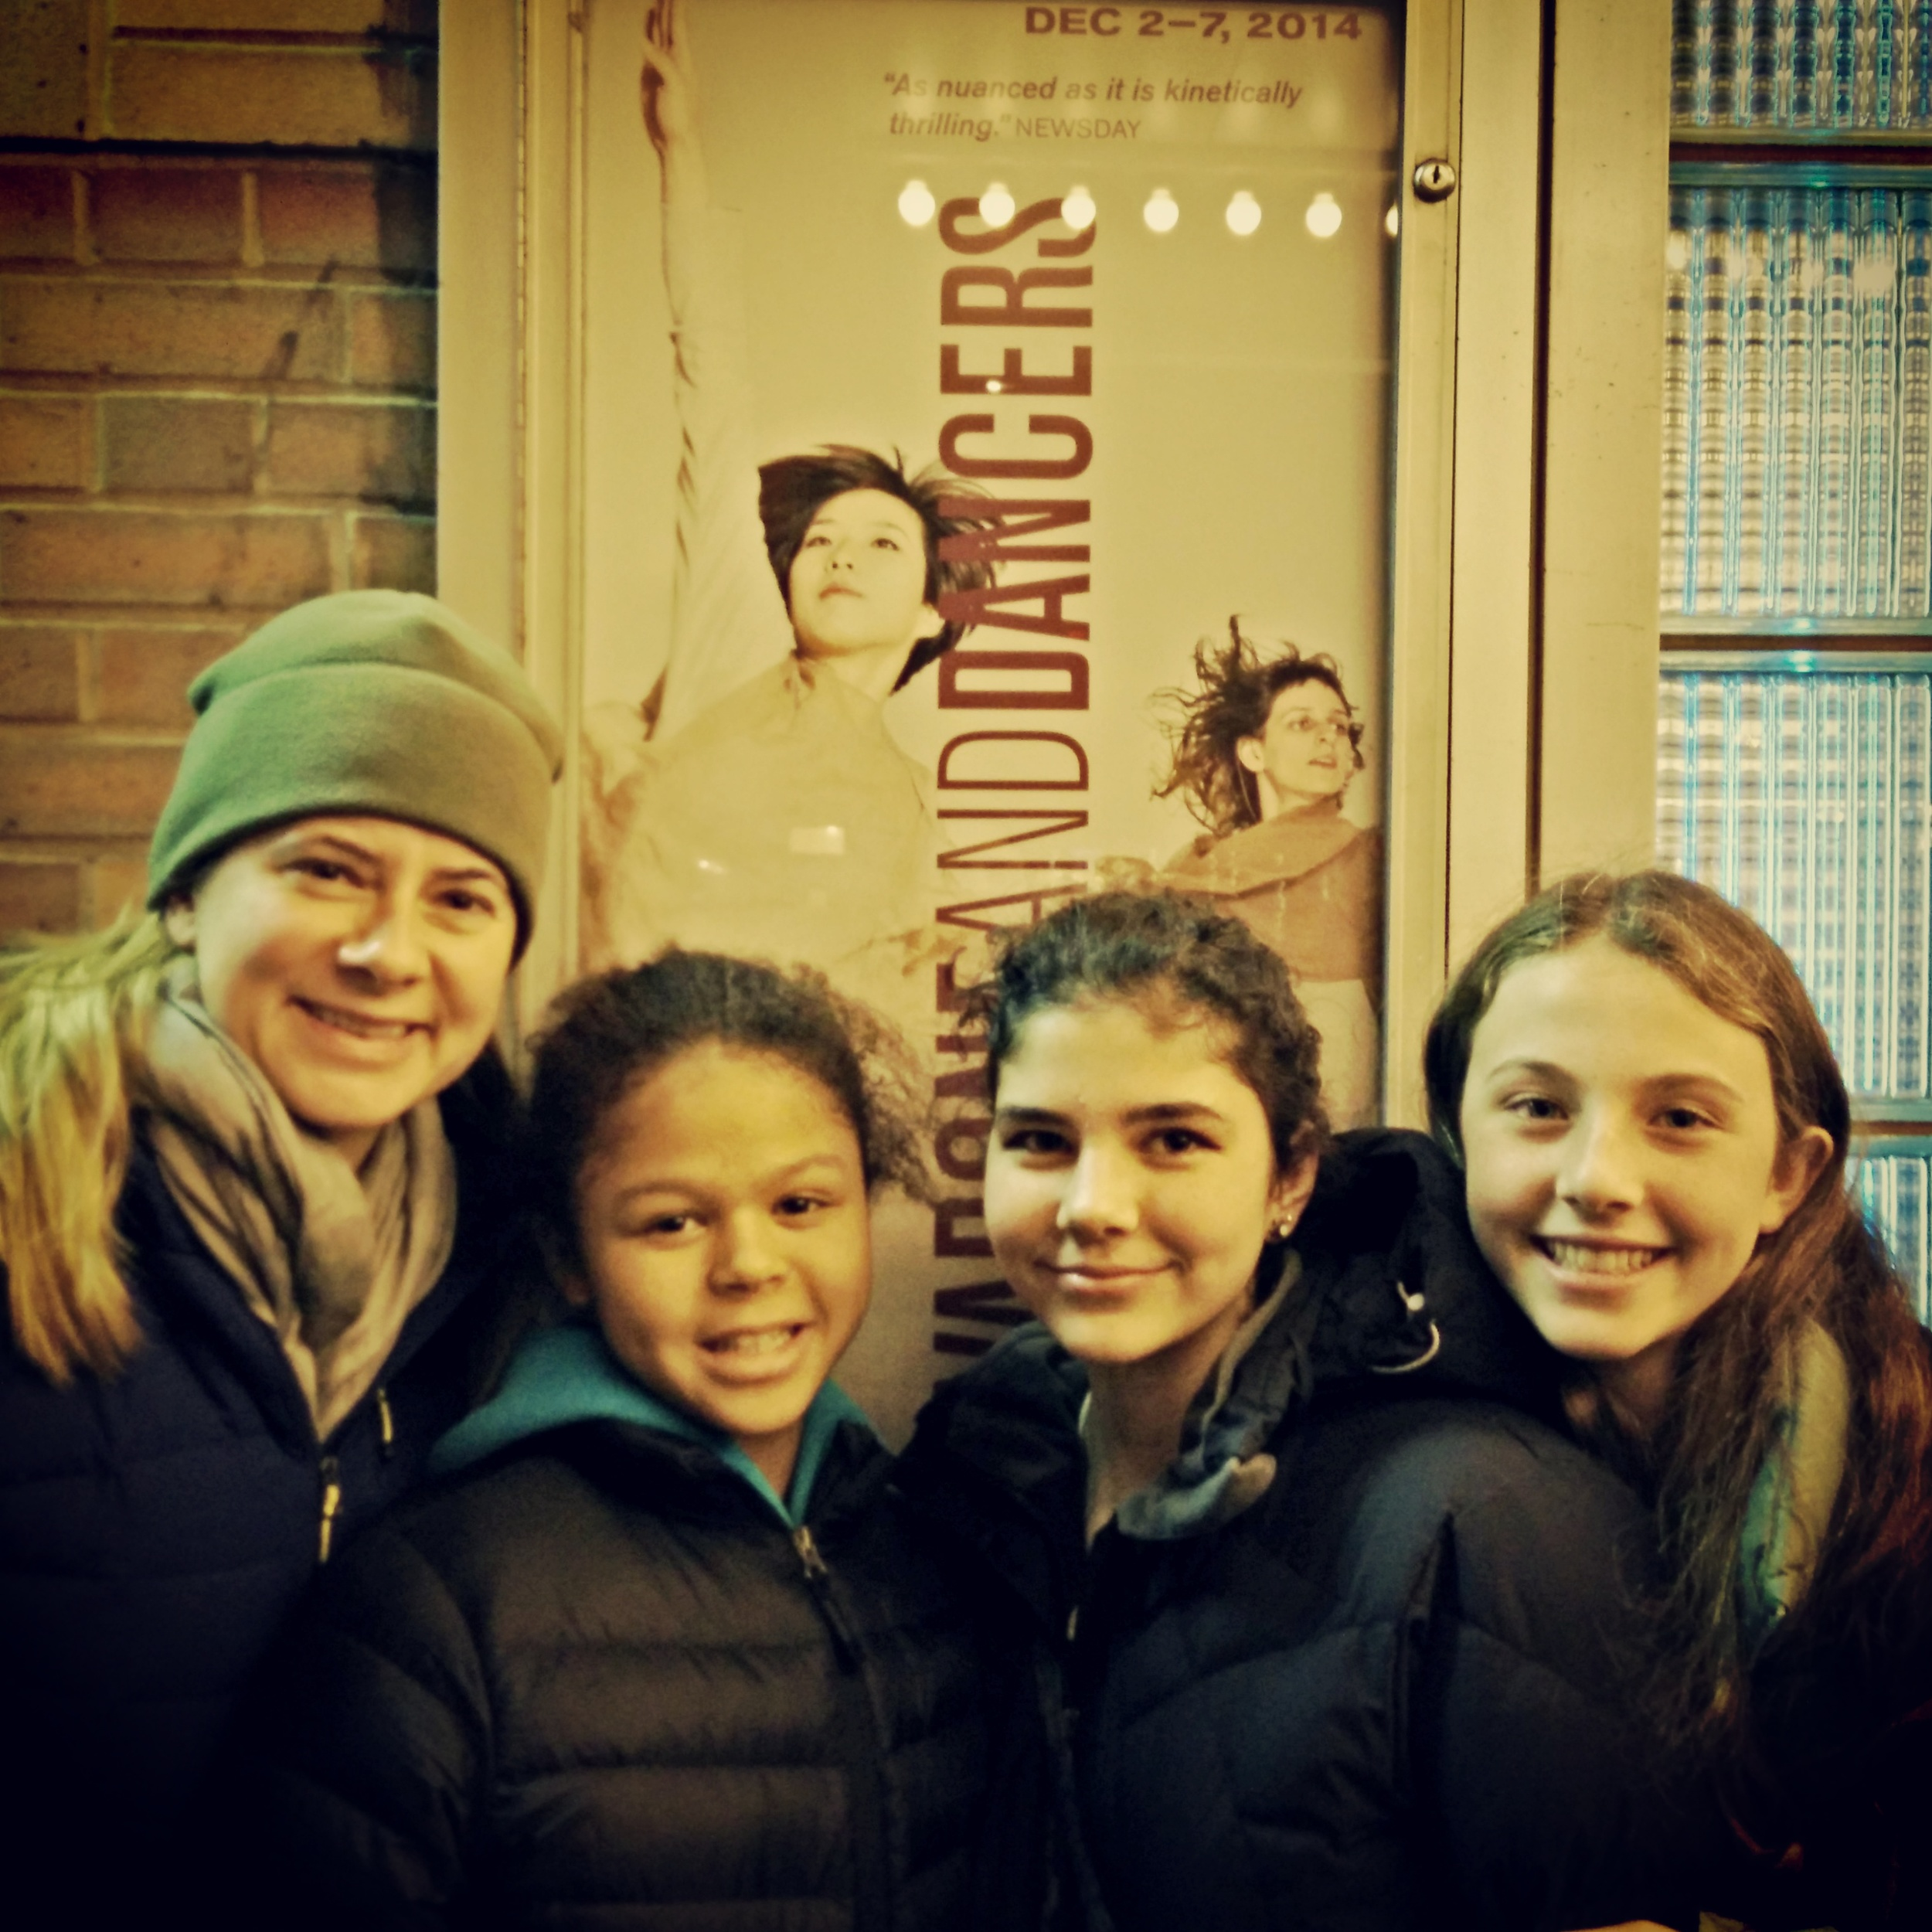 Rose with Erin and classmates at Doug Varone and Dancers at the Joyce Theater in December 2014.